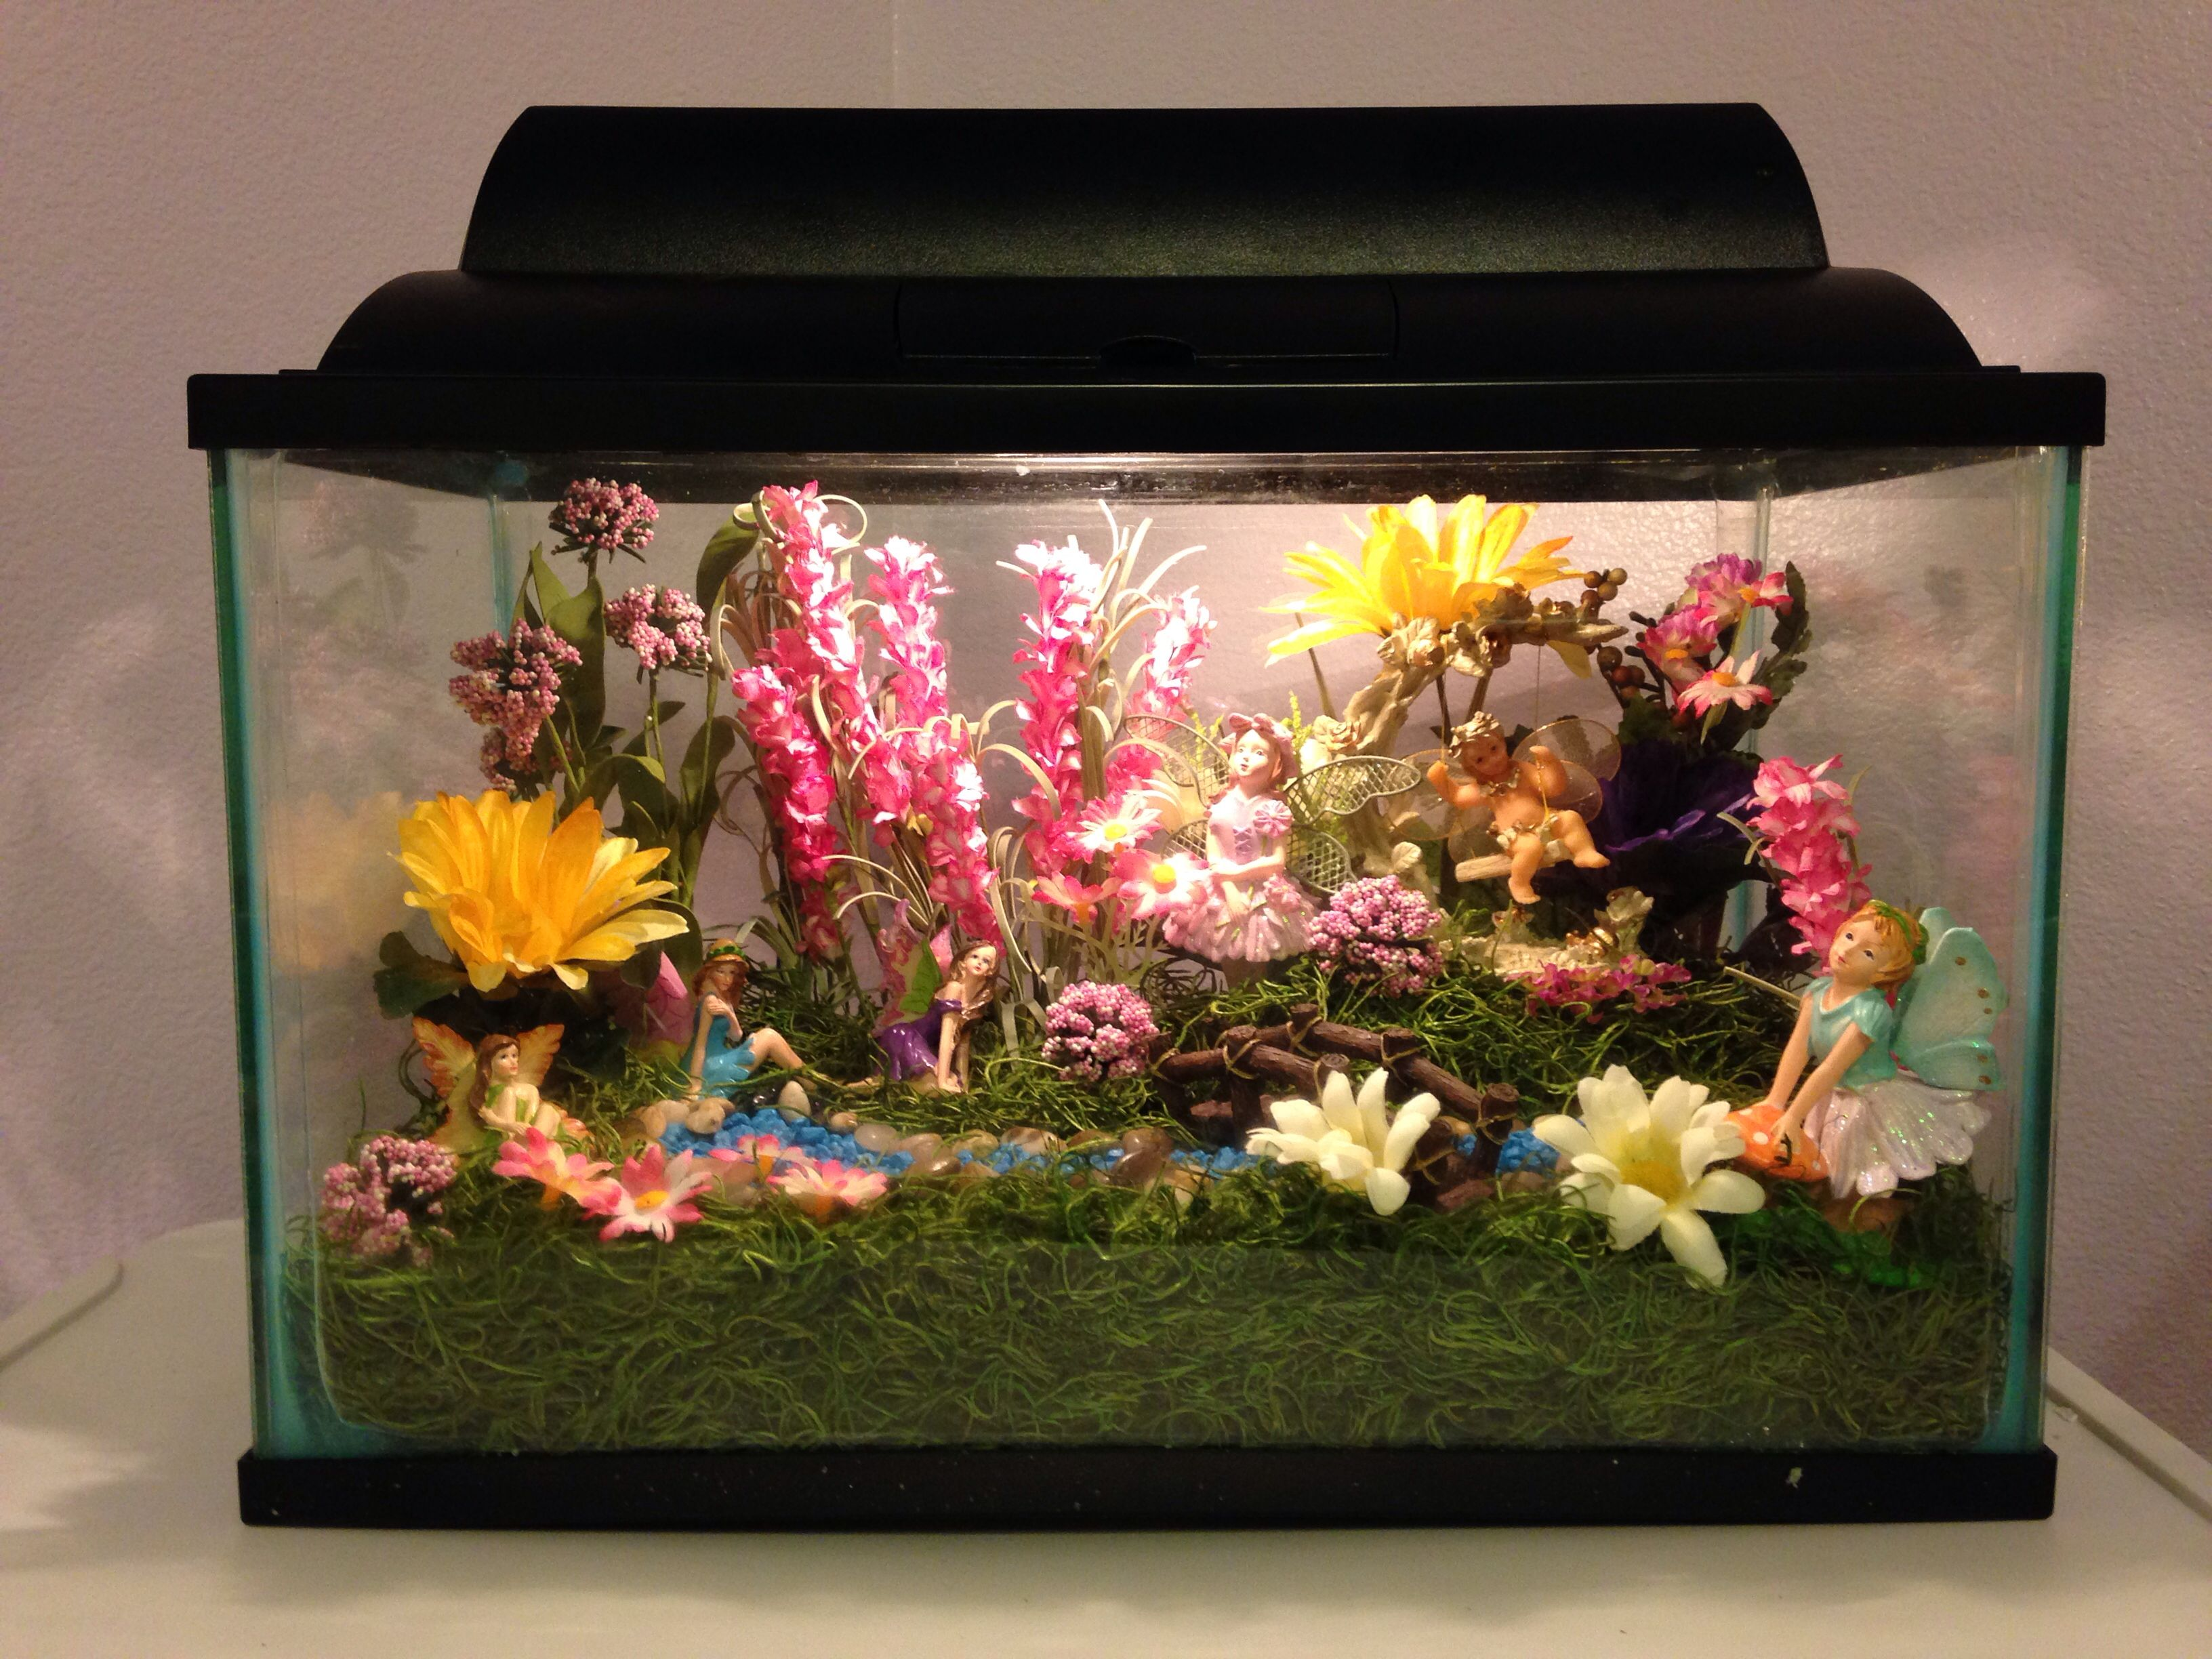 Fairy garden fish tank. Made as a night light for my